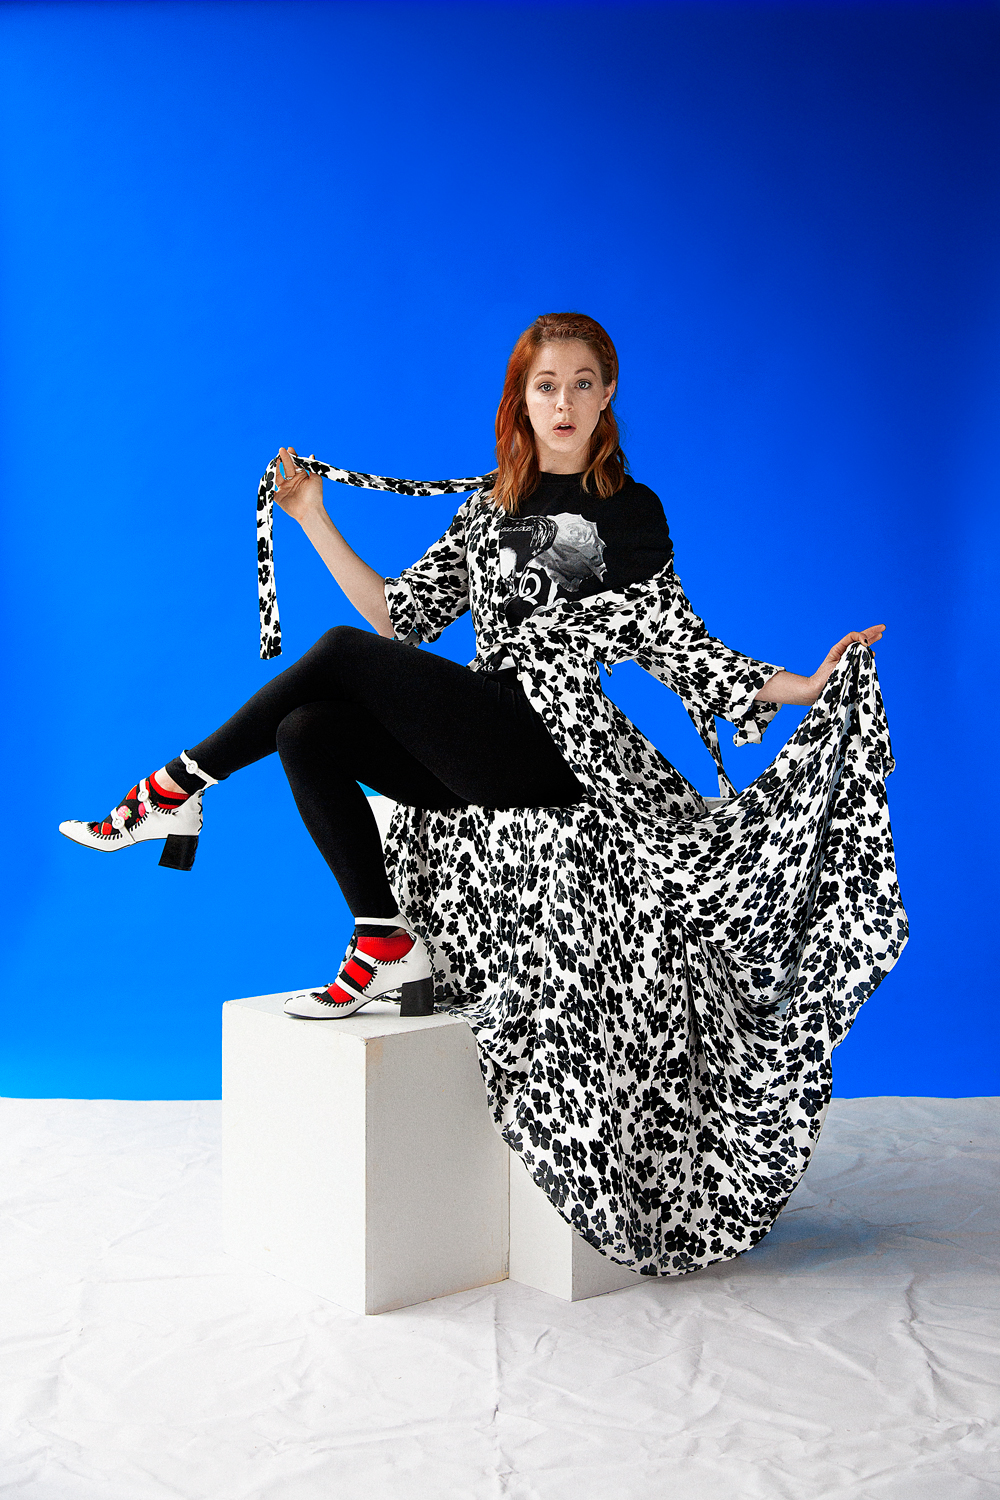 Lindsey-Stirling-Eivind-Hansen-07-Edit.jpg